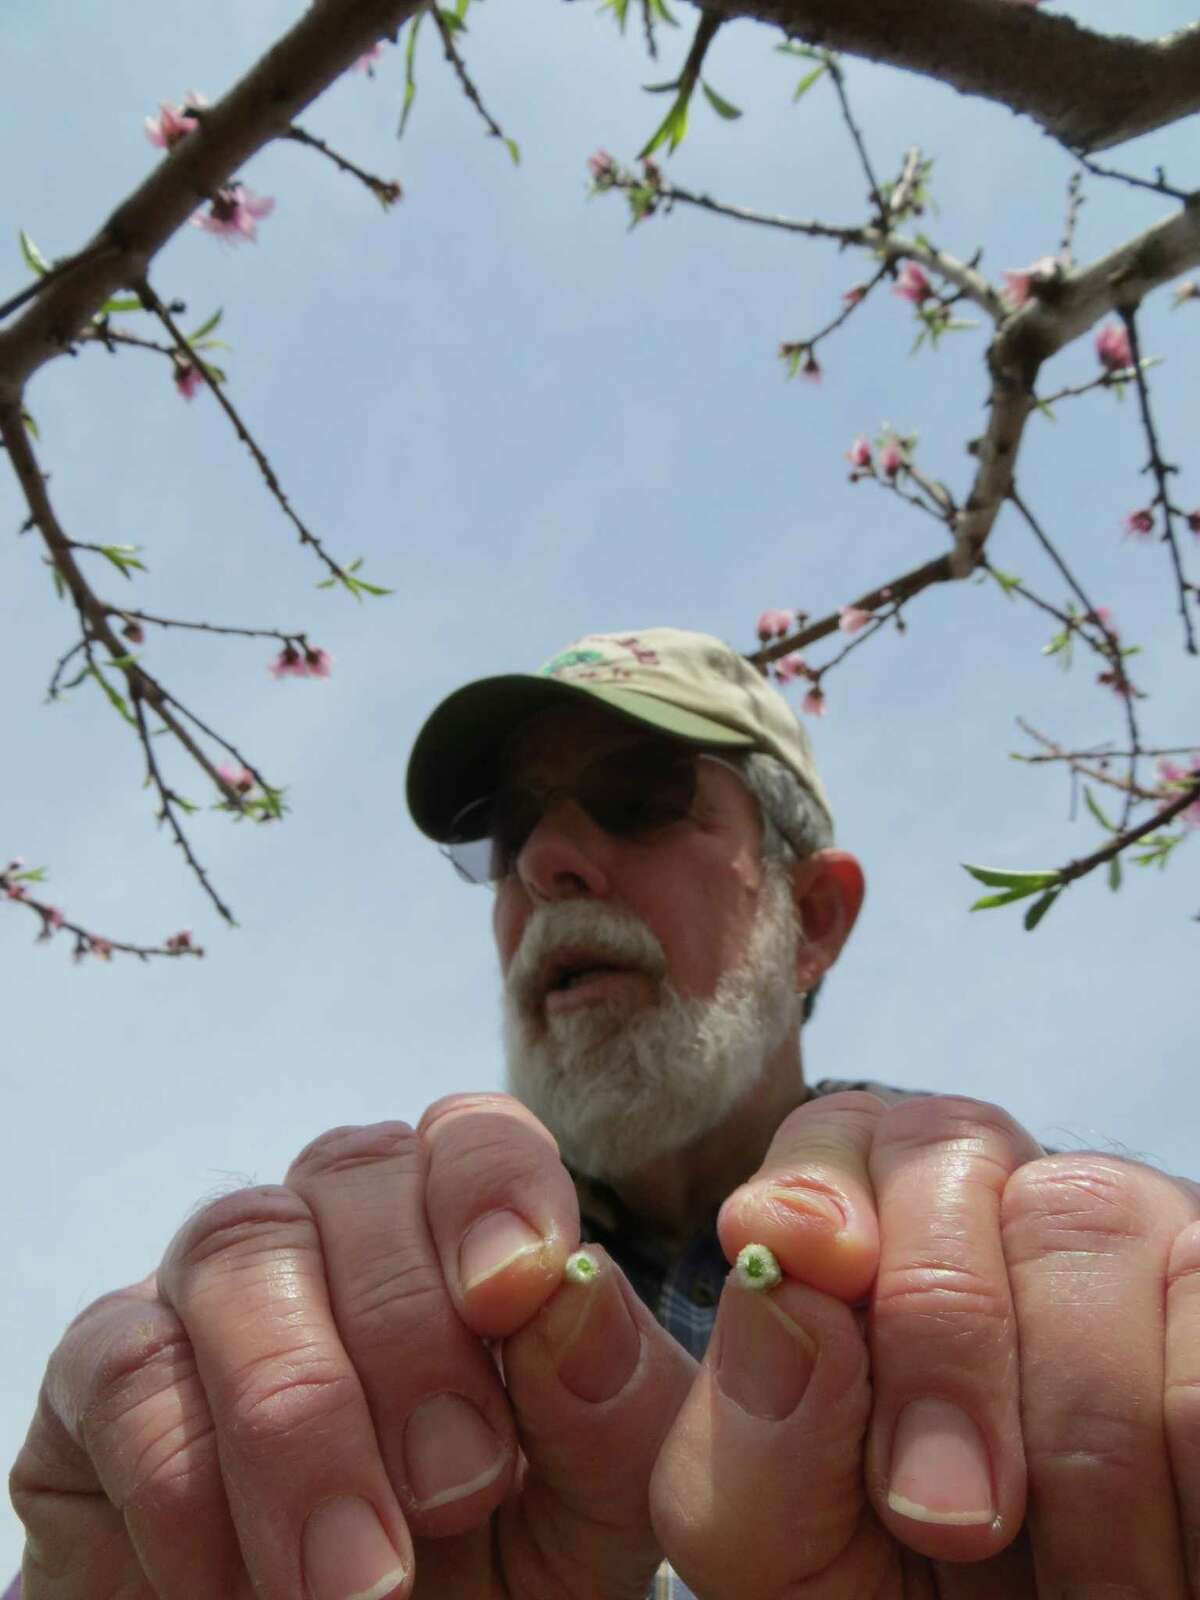 Gary Marburger of Marburger Orchard in Gillespie County displays the ovary of a peach blossom that he broke apart to check for frost damage.